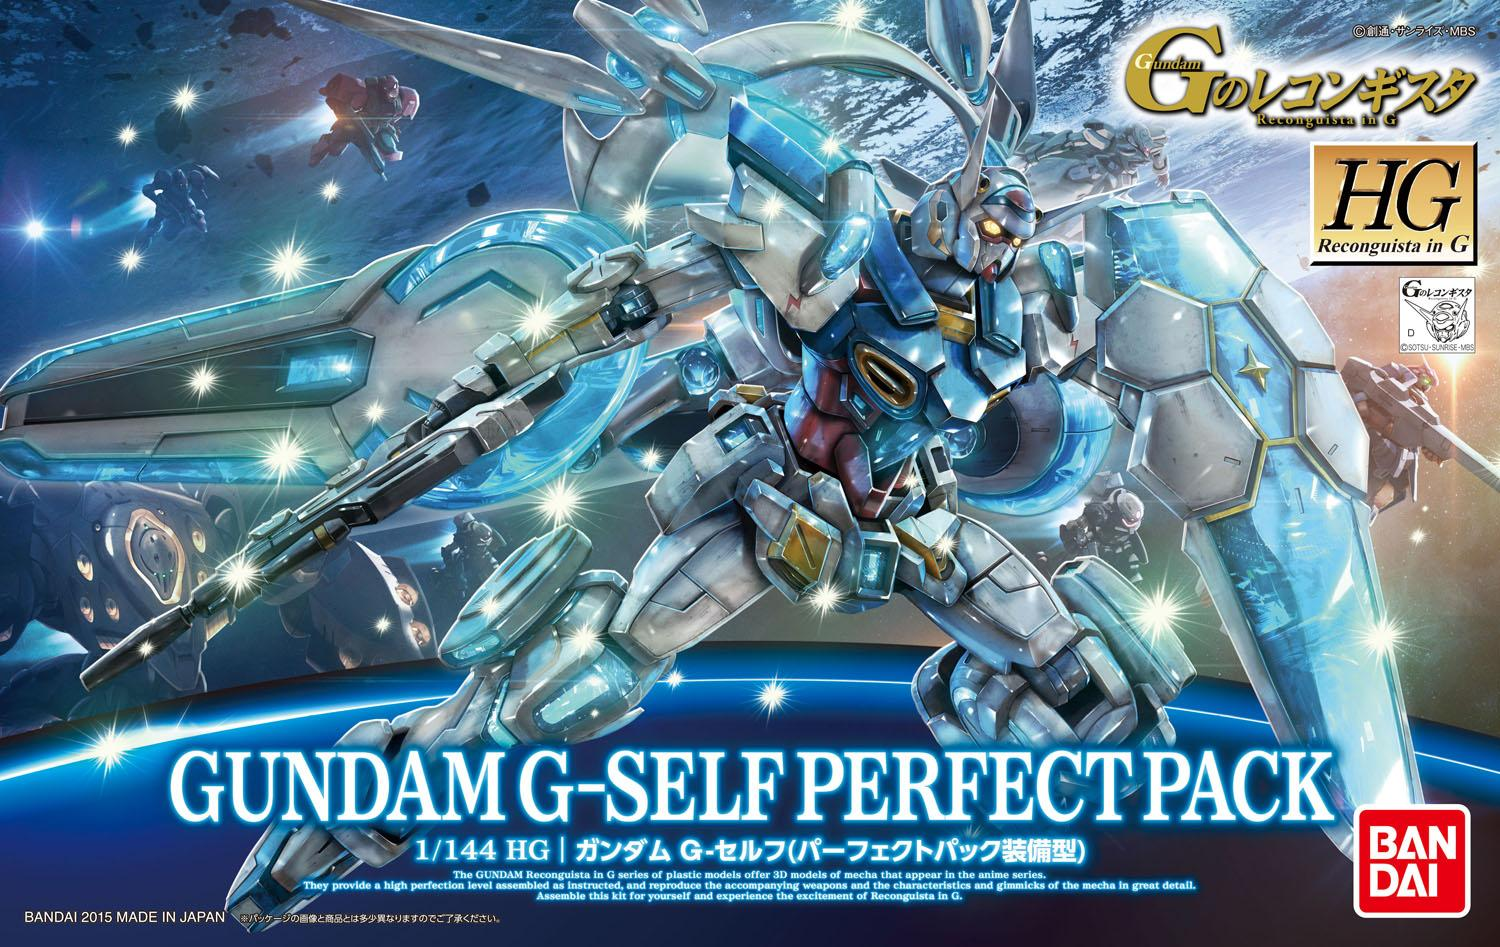 HG 1/144 Gundam G-Self Perfect Pack: Added Box Art, Official Images, Info Release